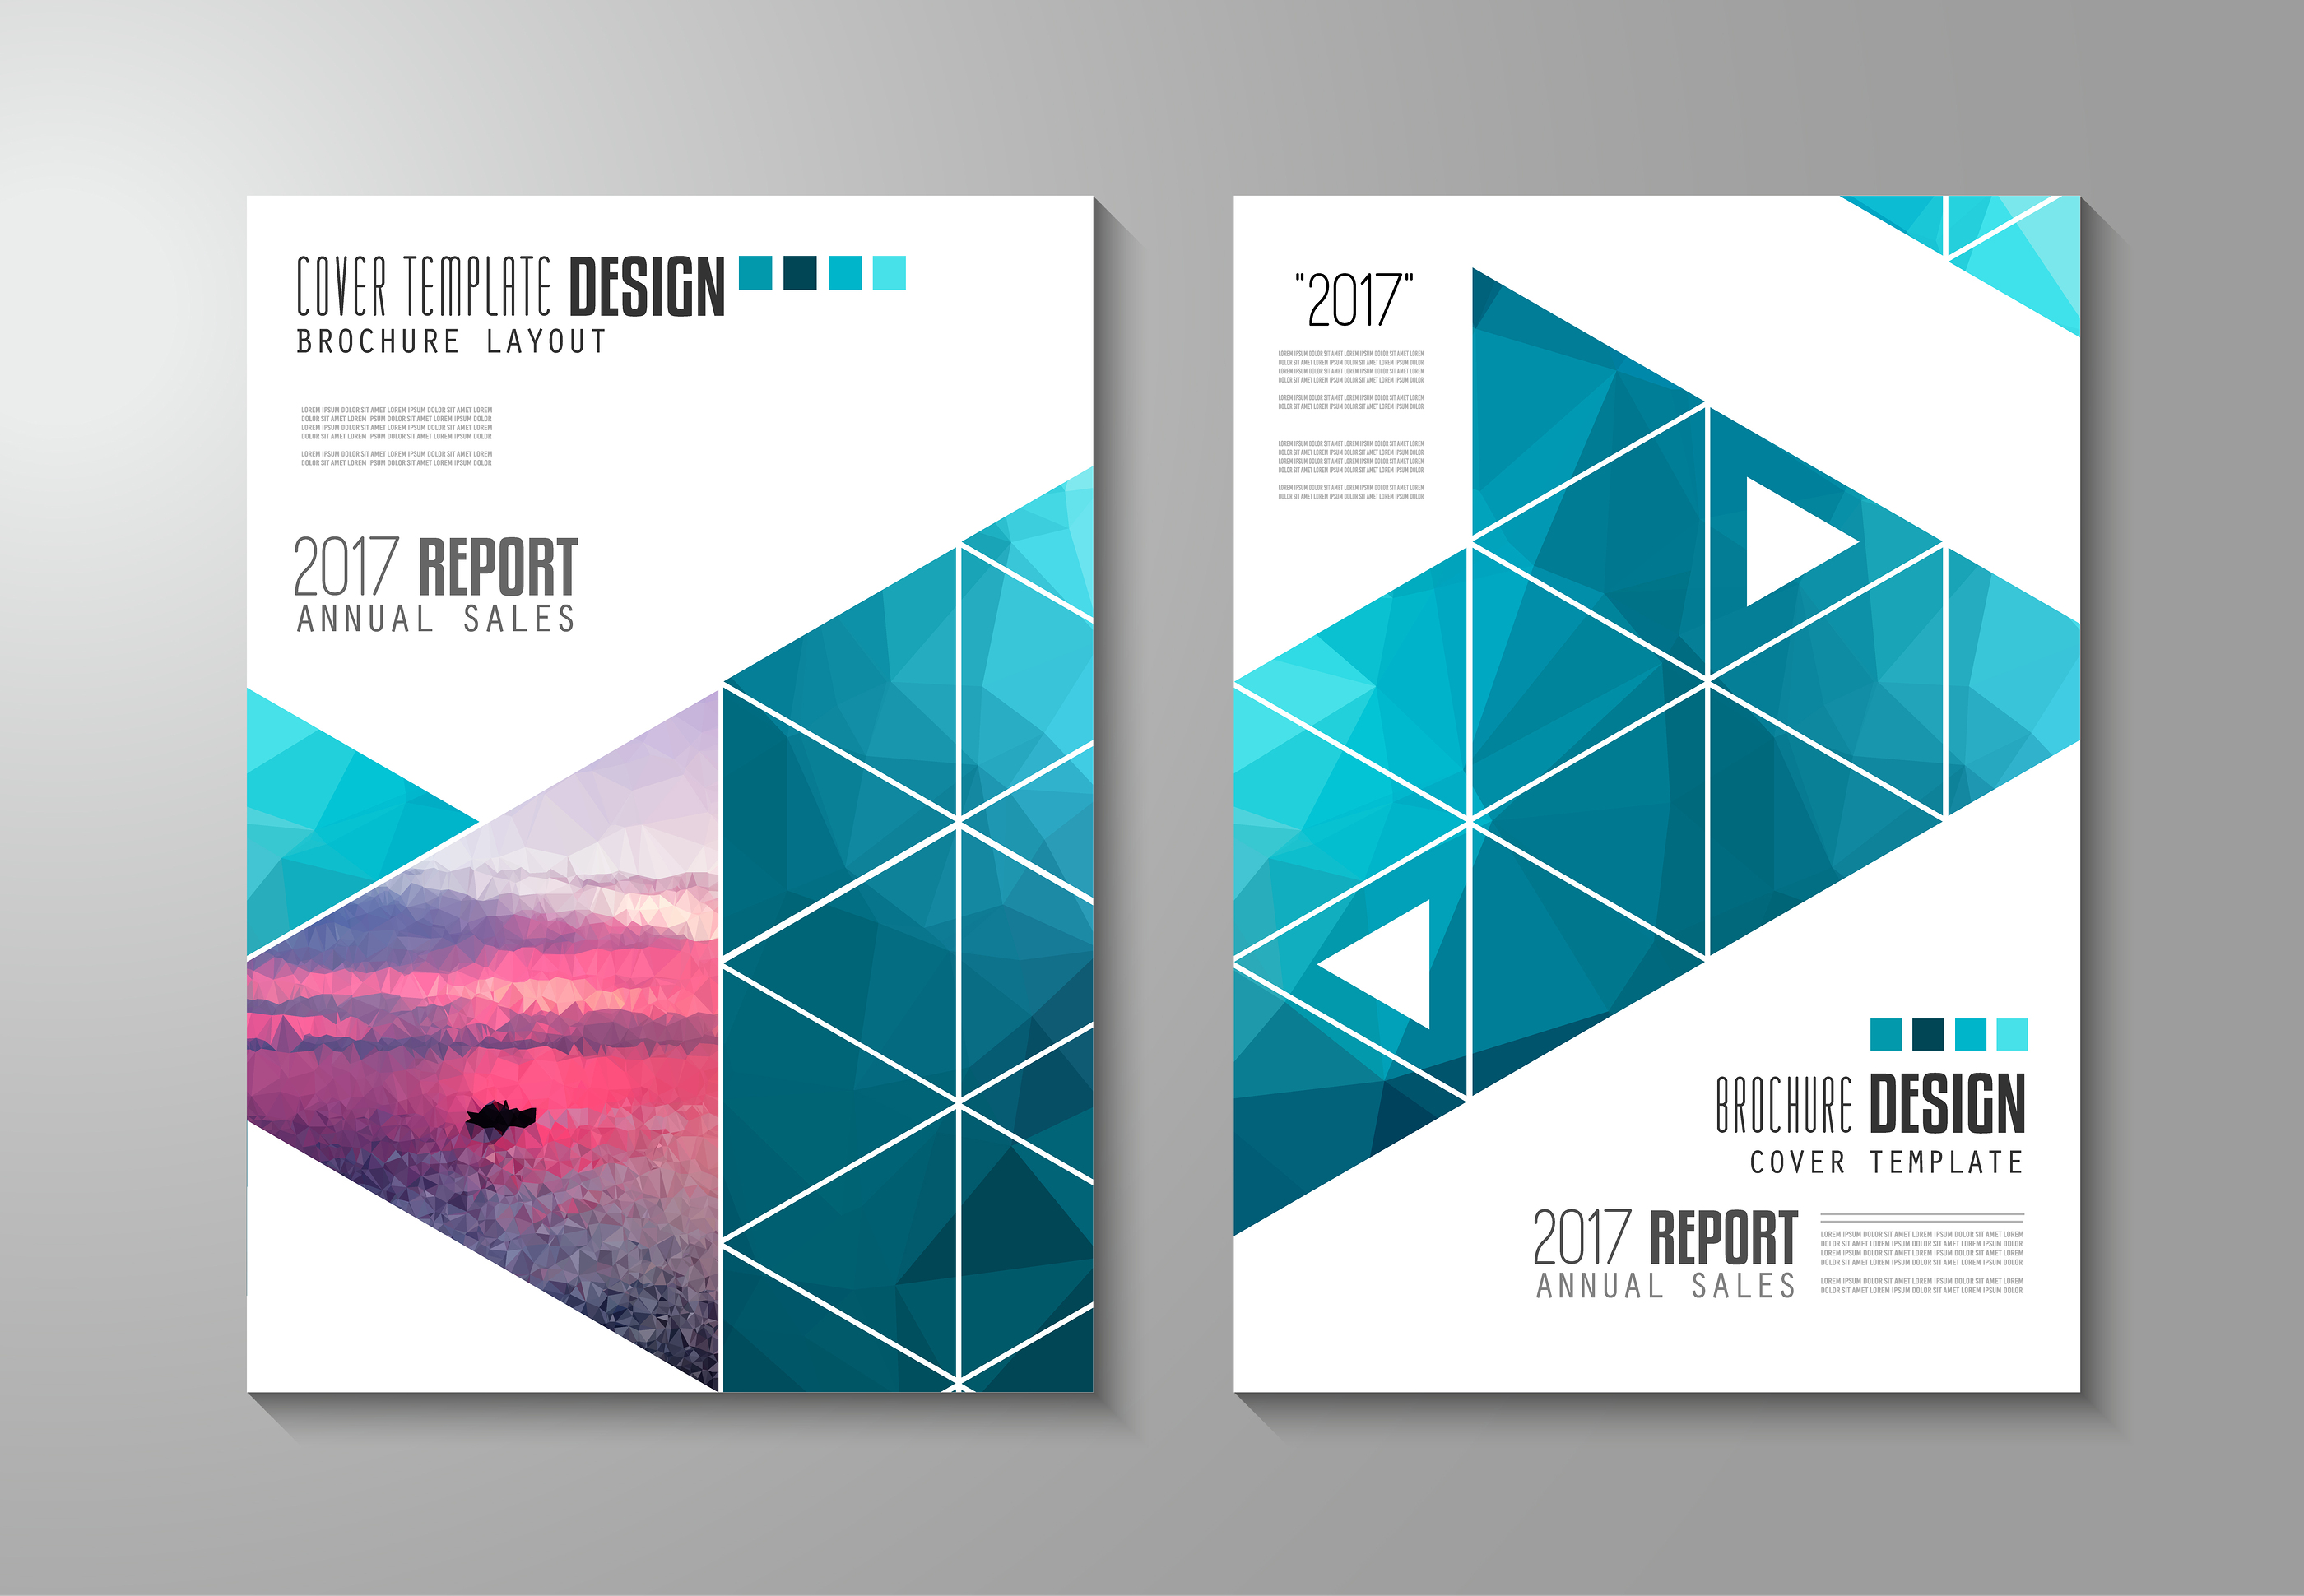 Brochure template, Flyer Design or Depliant Cover for business presentation and magazine covers, ann